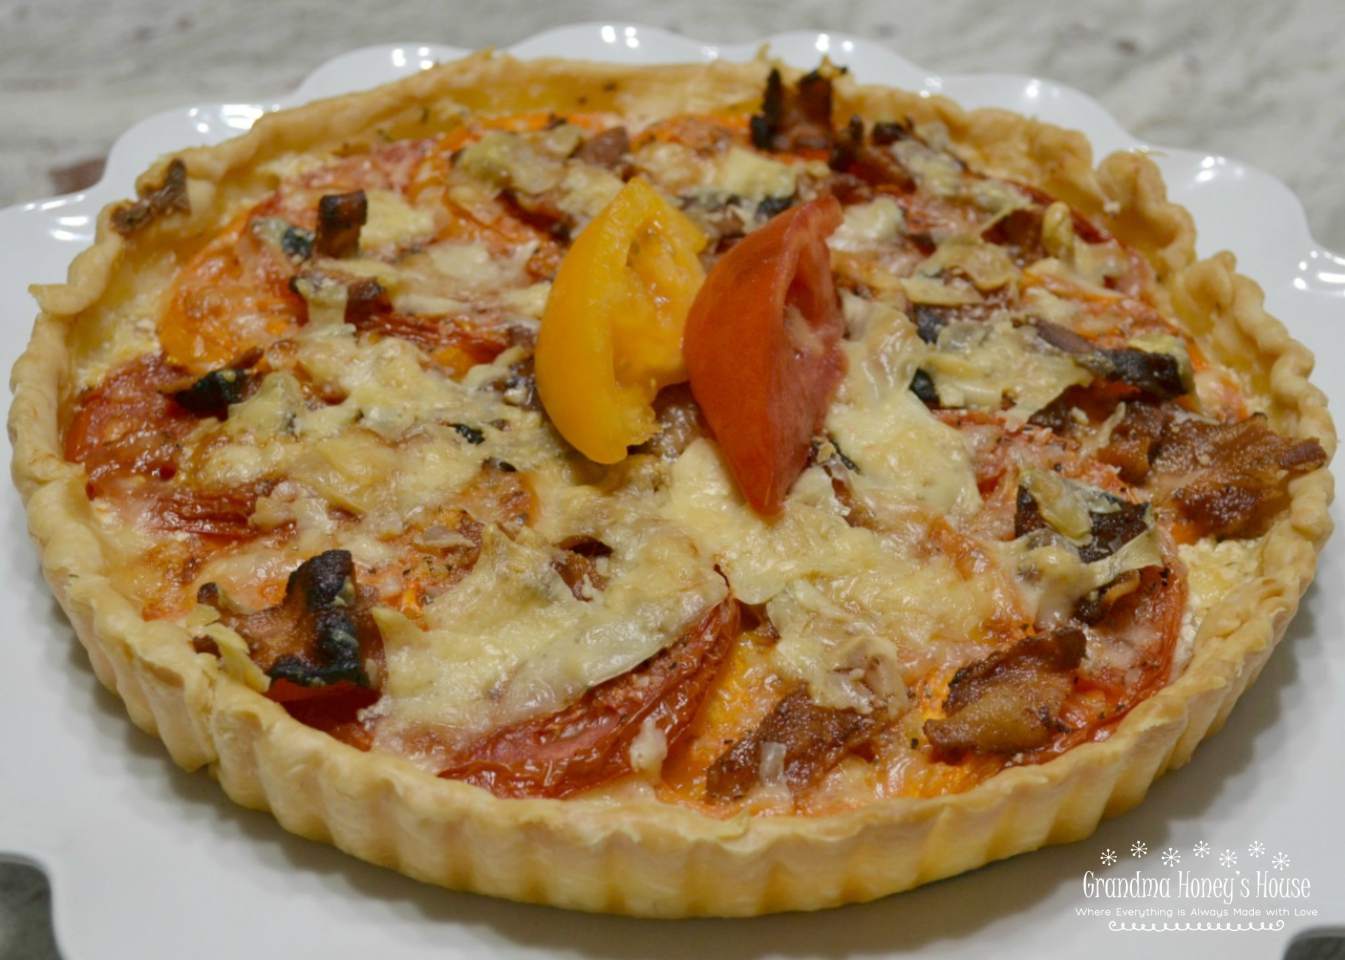 This Garden Fresh Tomato Bacon Tart is a crust filled with chive & onion cream cheese,fontina,fresh tomatoes,bacon and seasonings. Perfect for summertime eating.